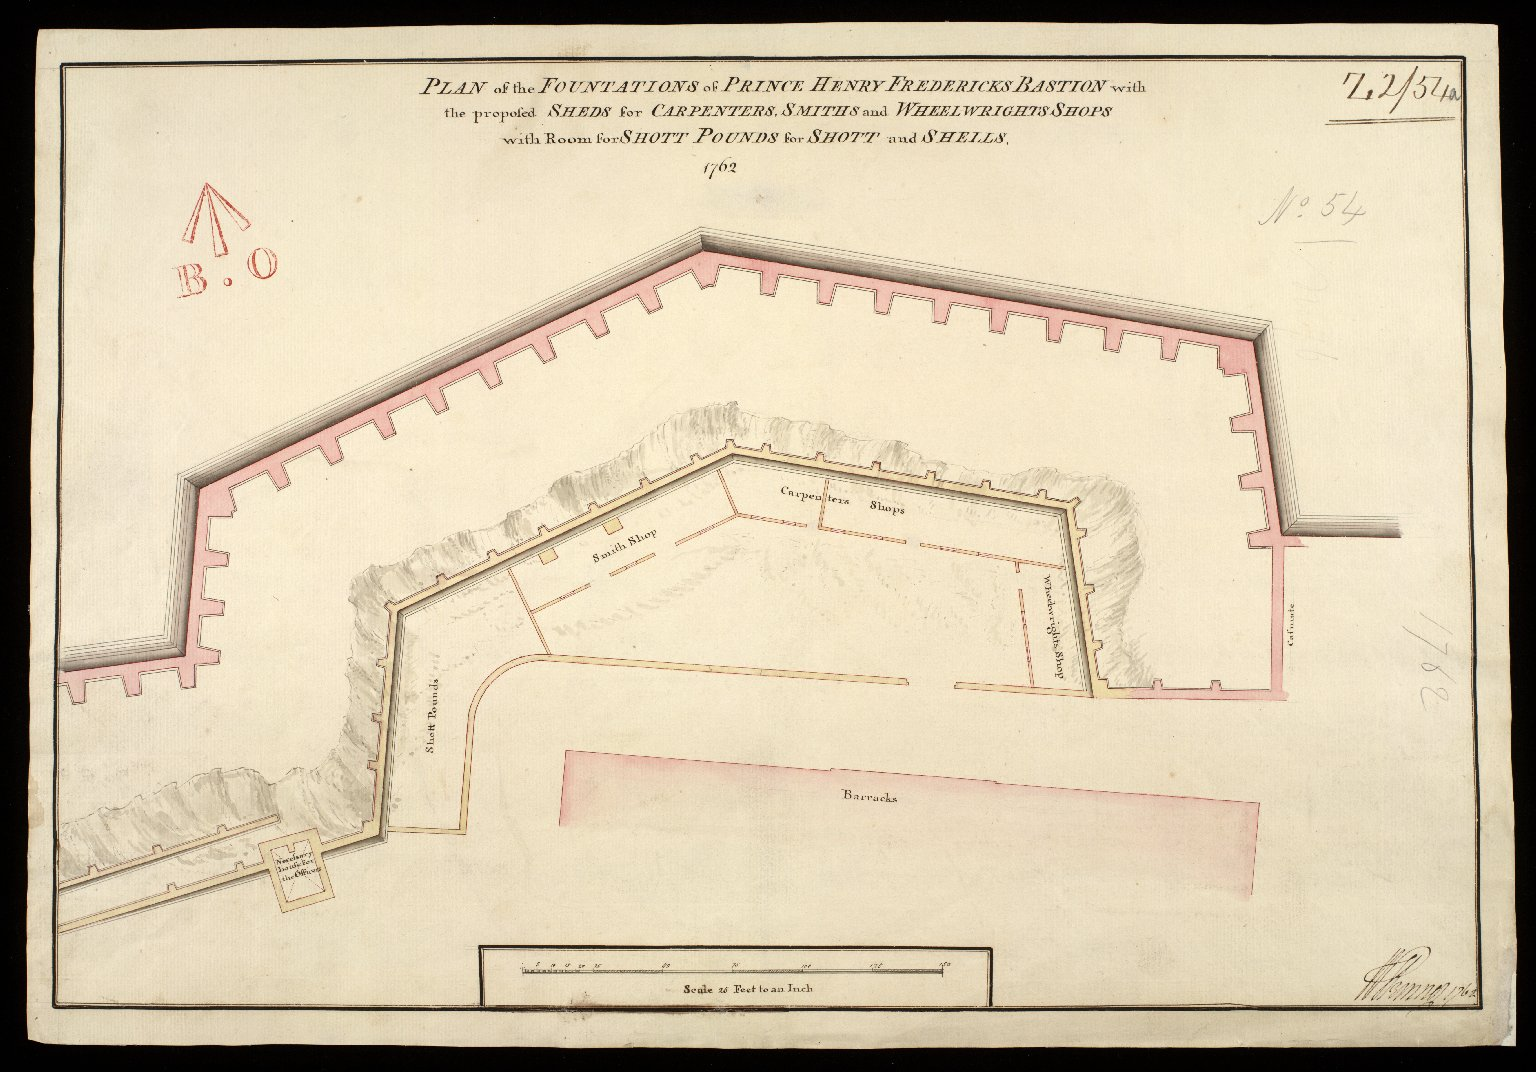 Plan of the fountations of Prince Henry Fredericks Bastion : with the proposed sheds for carpenters, smiths and wheelwrights shops with room for shott pounds for shott and shells 1762 [1 of 1]